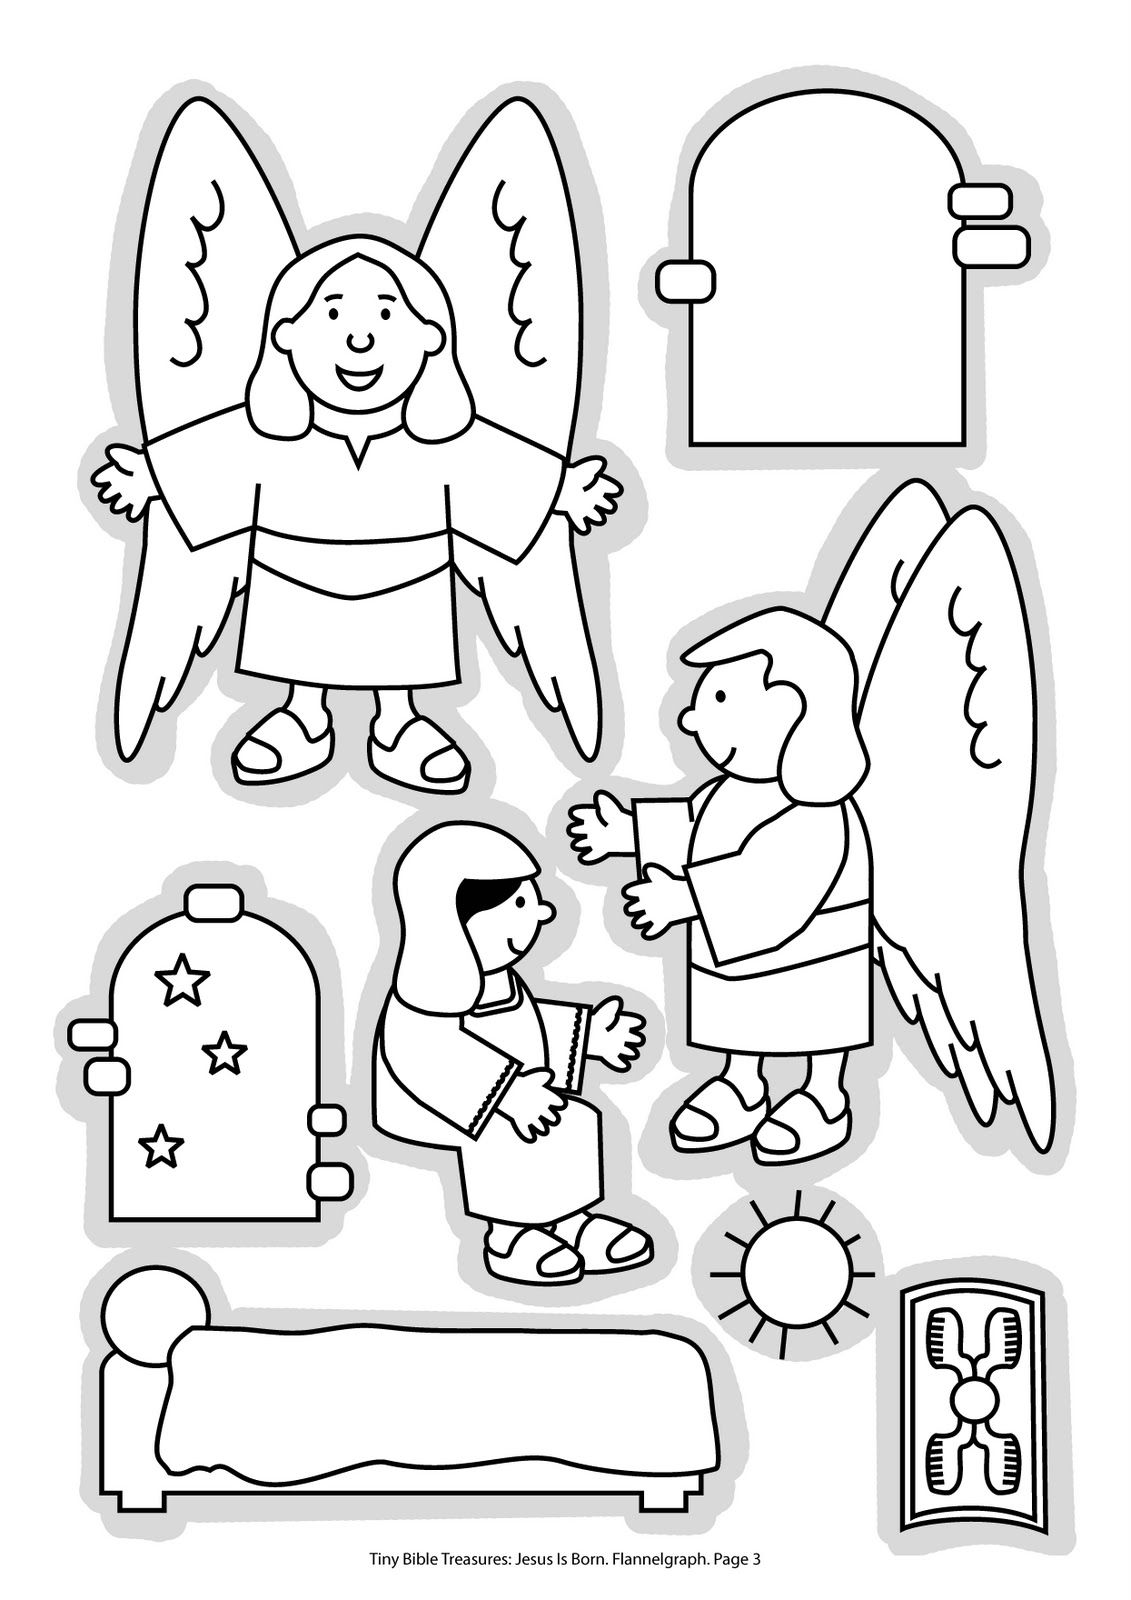 Jesus+is+born_flannelgraph_bw_Page_03.jpg (1131×1600) | Bible ...